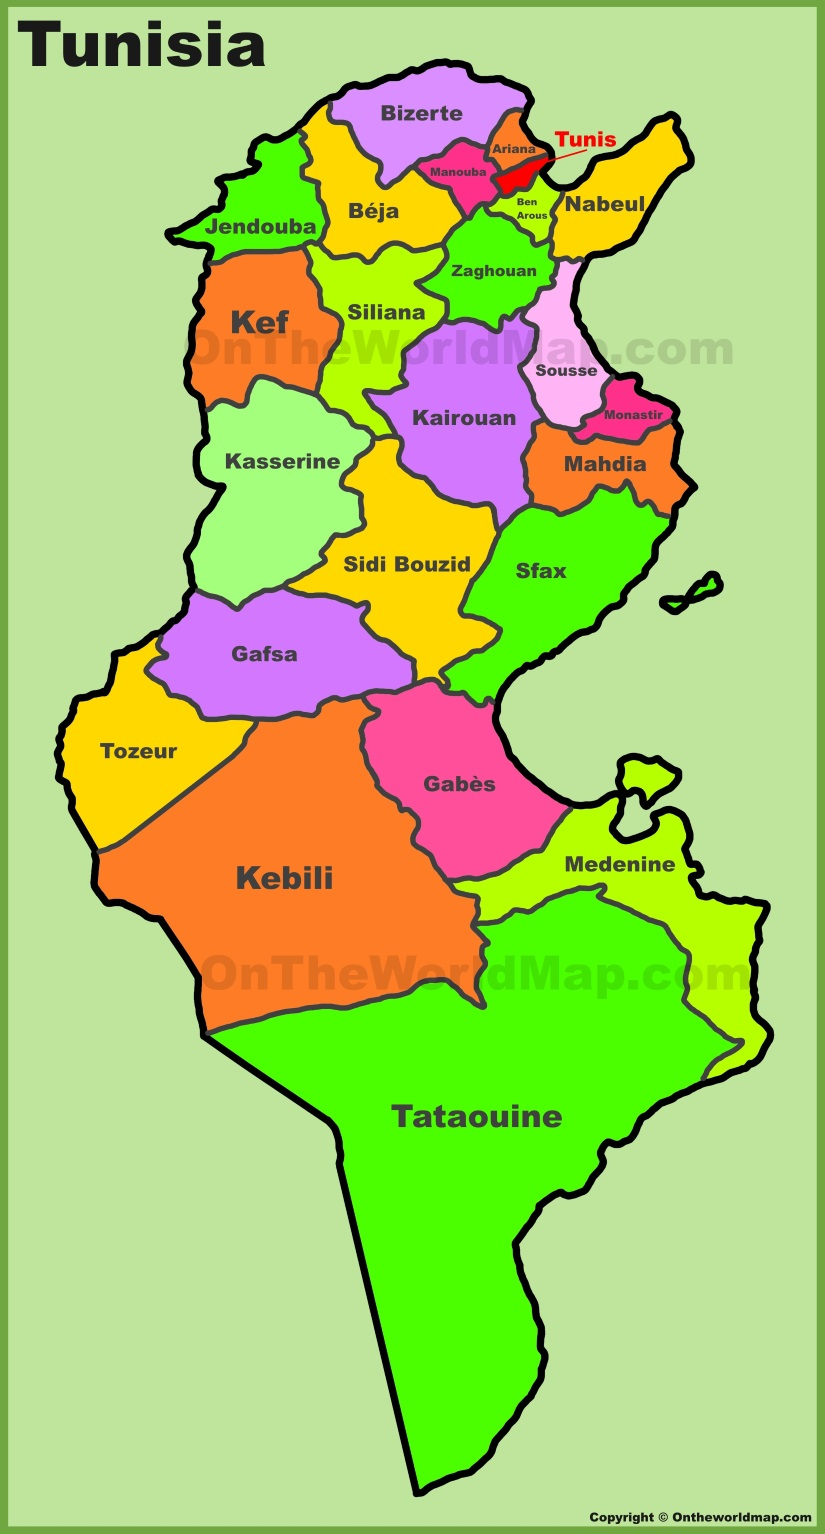 Administrative divisions map of Tunisia